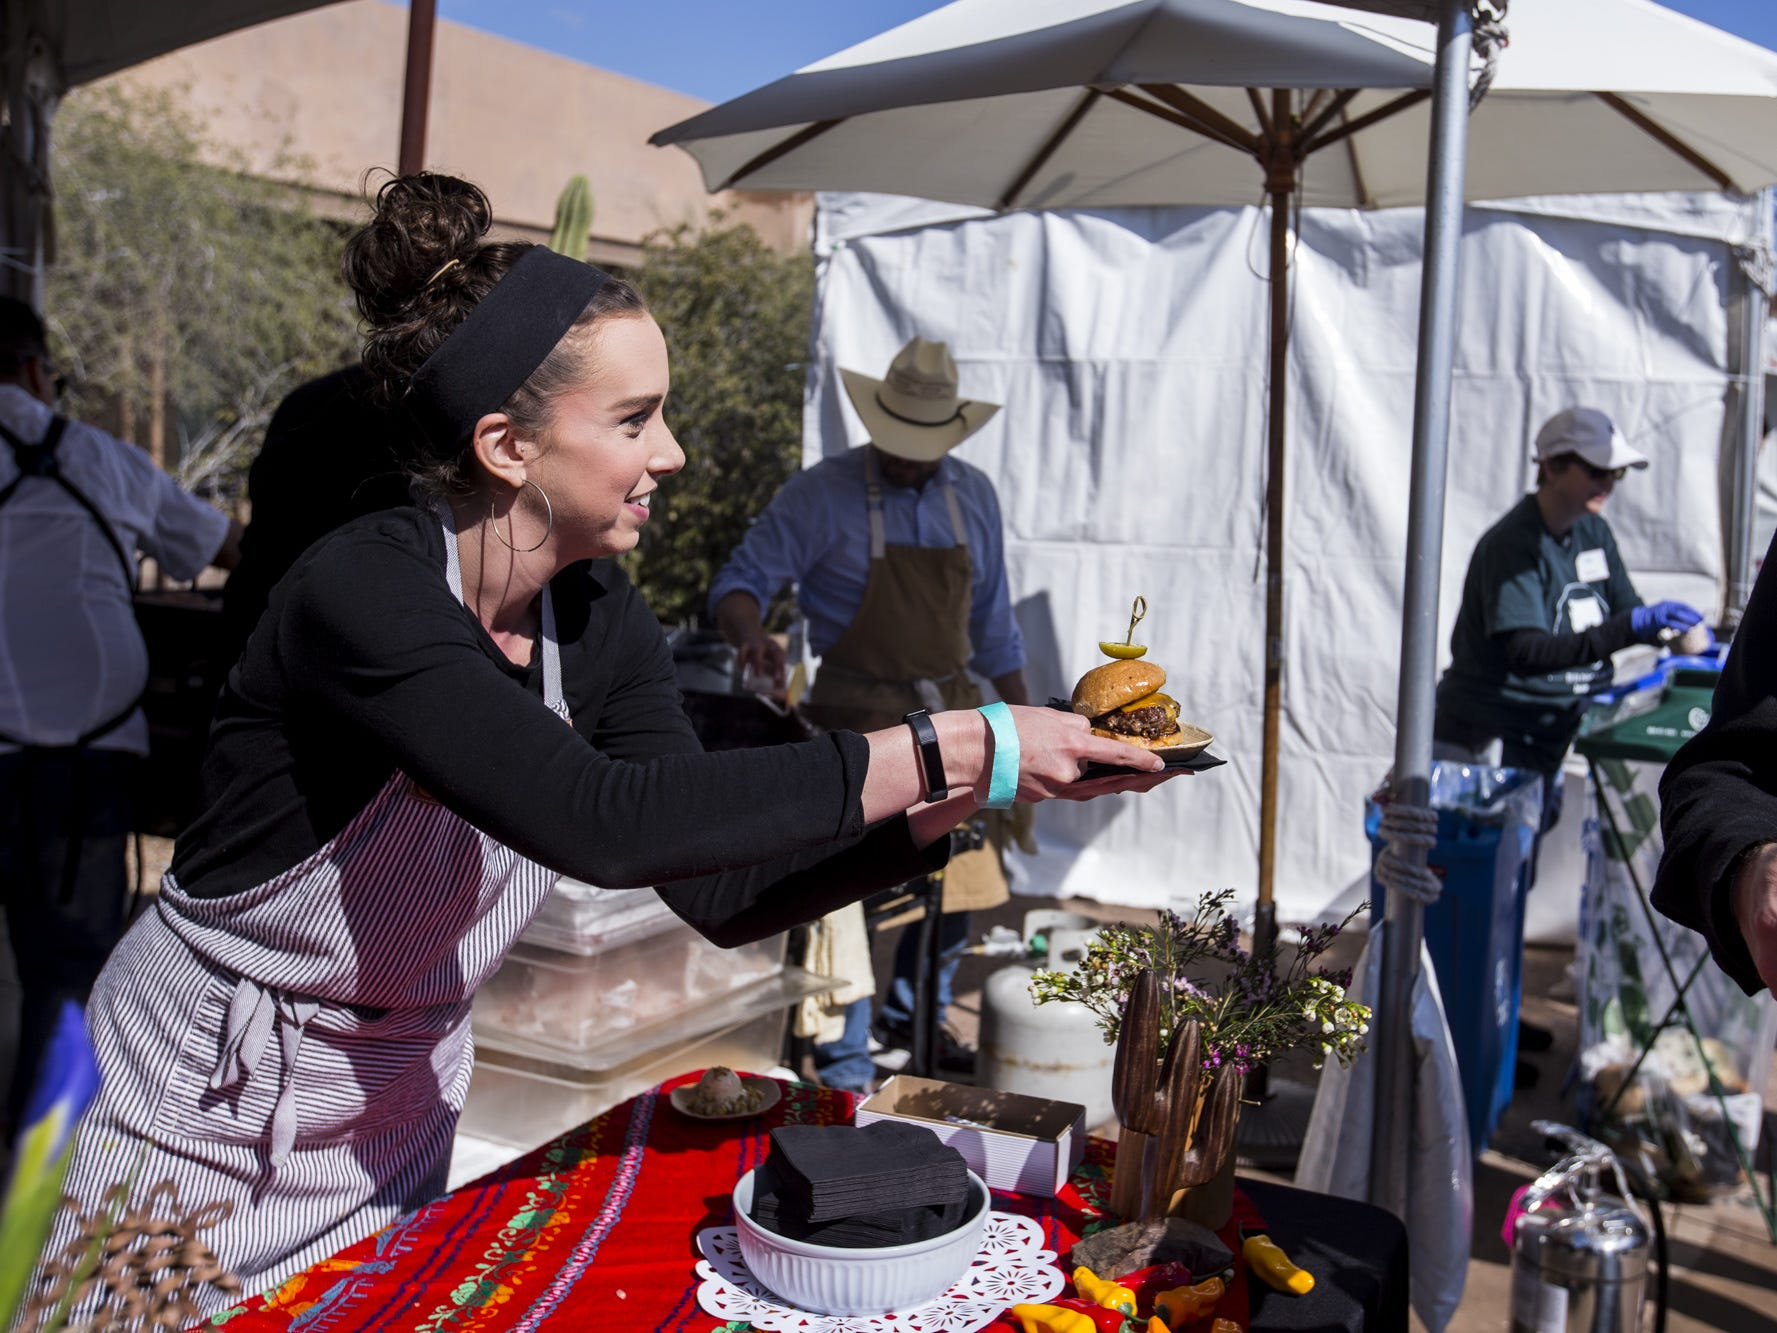 Janessa Hilliard of Otro Cafe gives out samples during Day 1 of the Devour Culinary Classic on Saturday, Feb. 23, 2019, at Desert Botanical Garden in Phoenix.